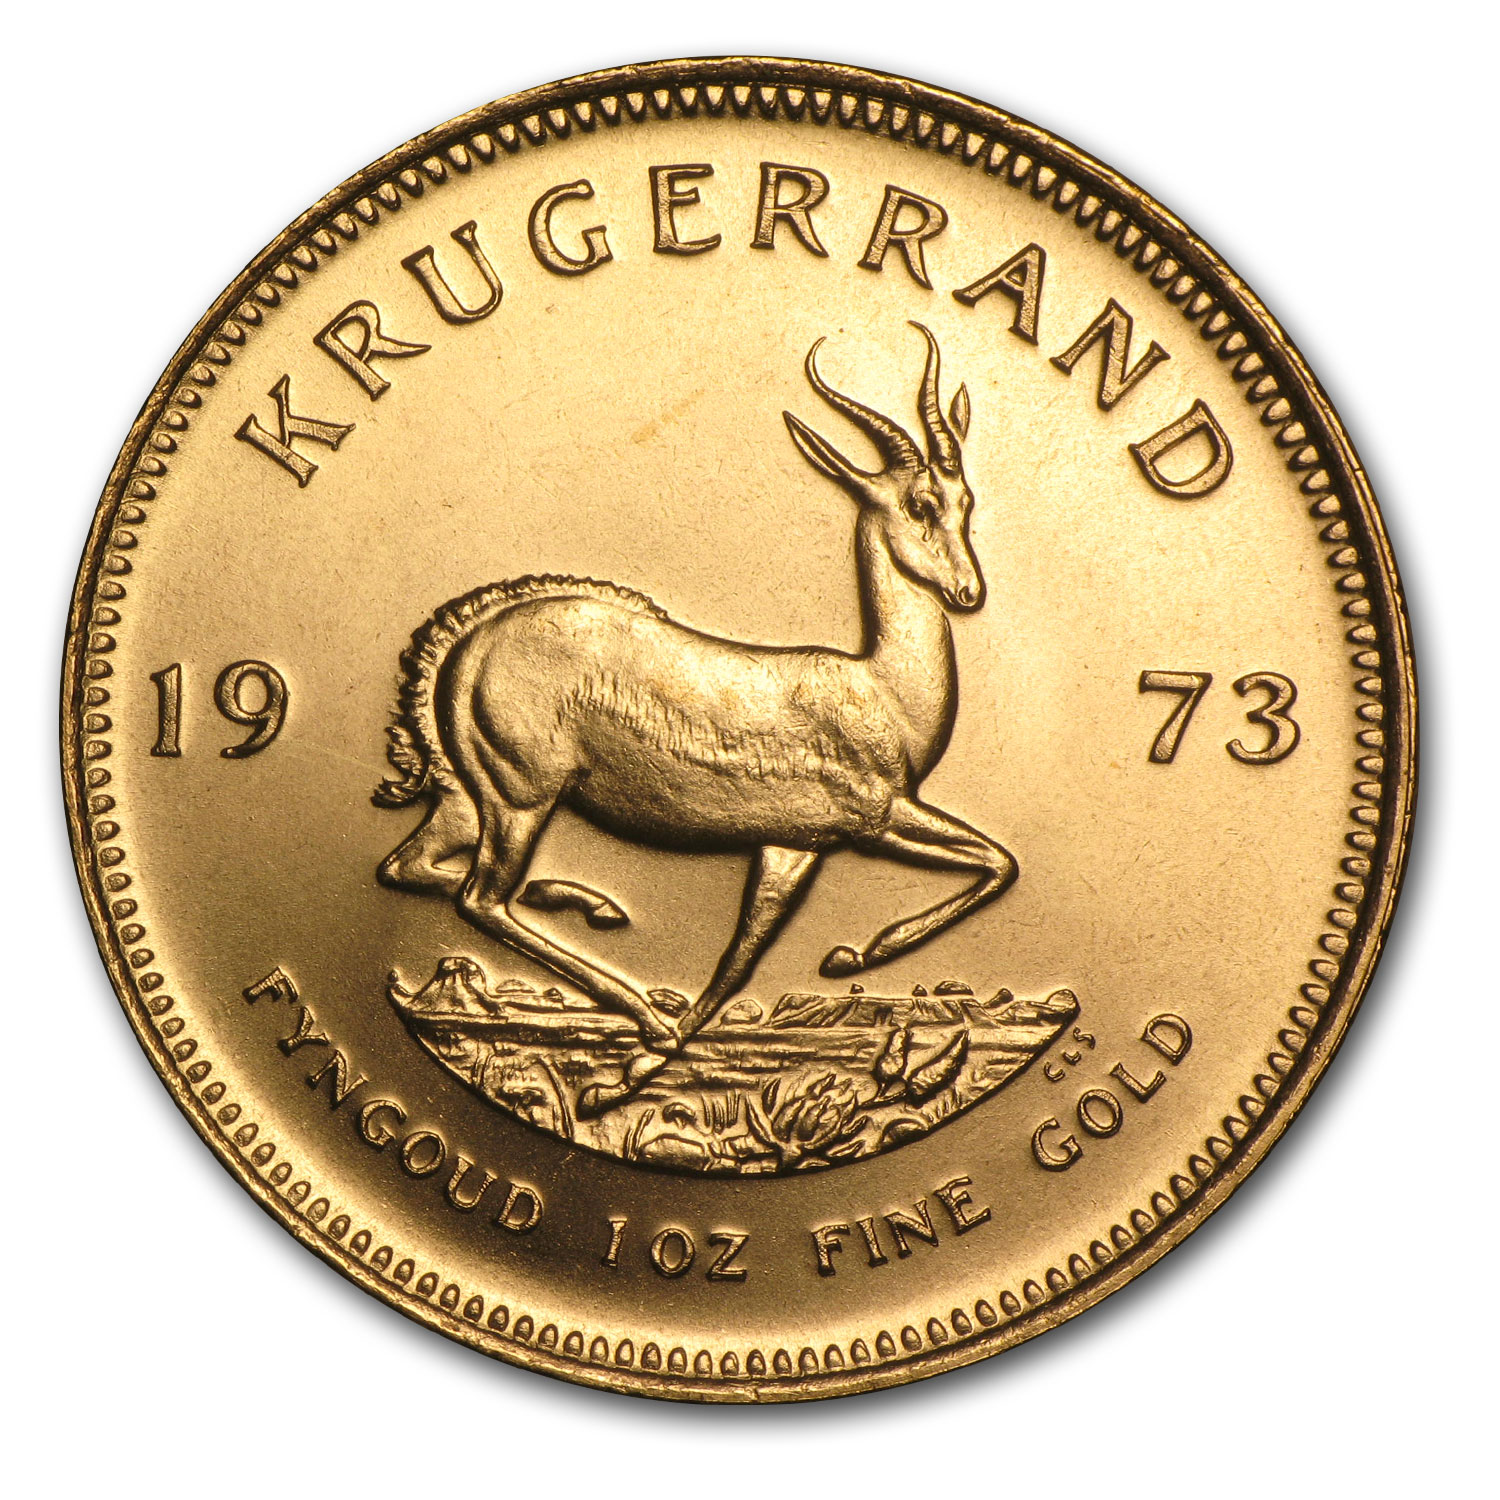 1973 1 oz Gold South African Krugerrand